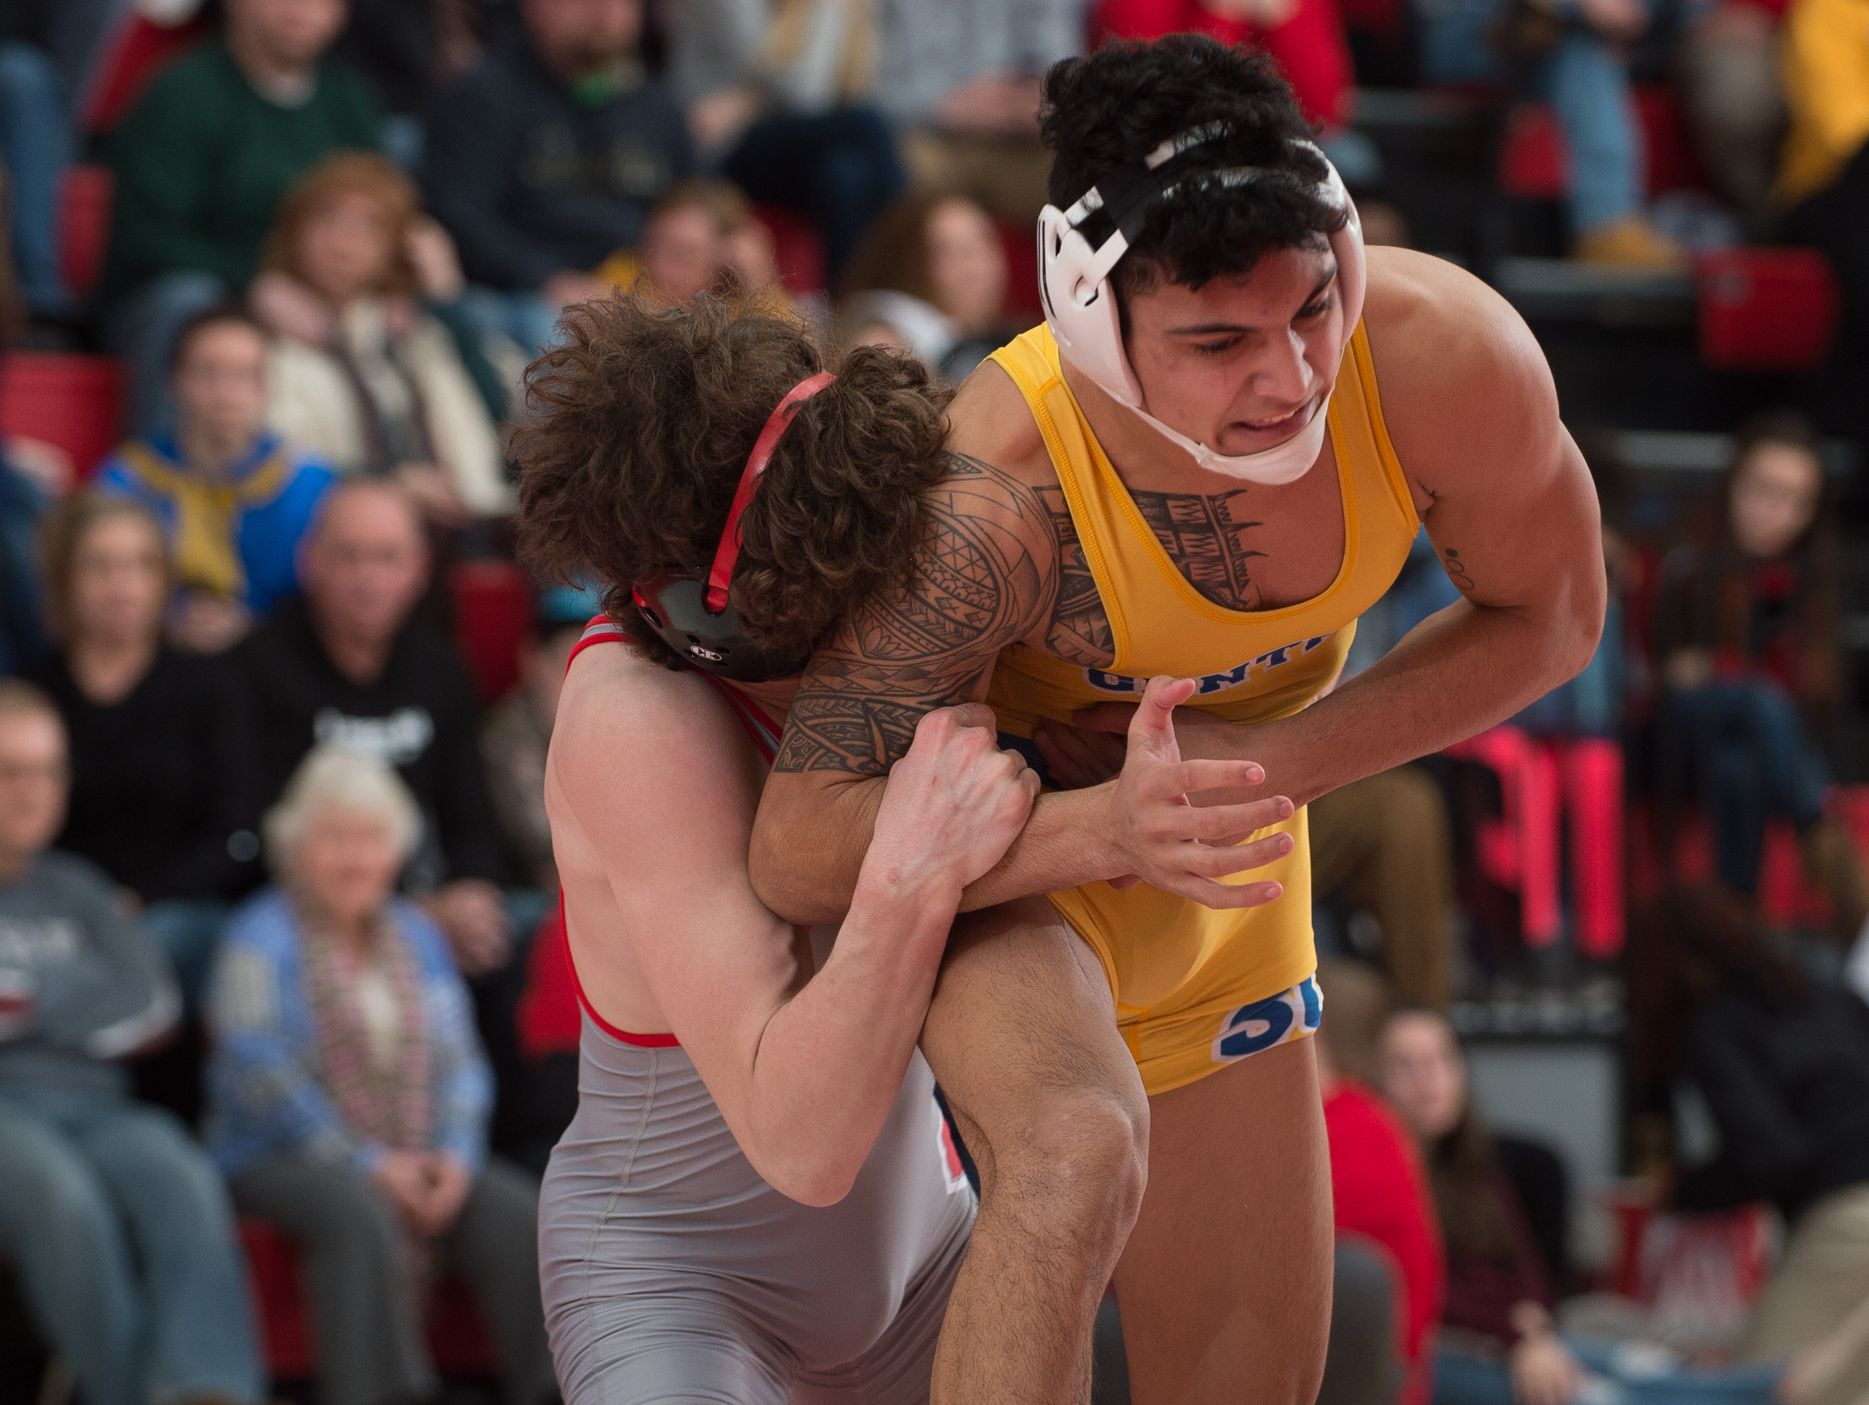 Smyrna's J.T. Davis, left, holds on to Sussex Central's Drew Morris in the 138 pound match at Smyrna High School. Smyrna defeated Sussex Central 39-27.